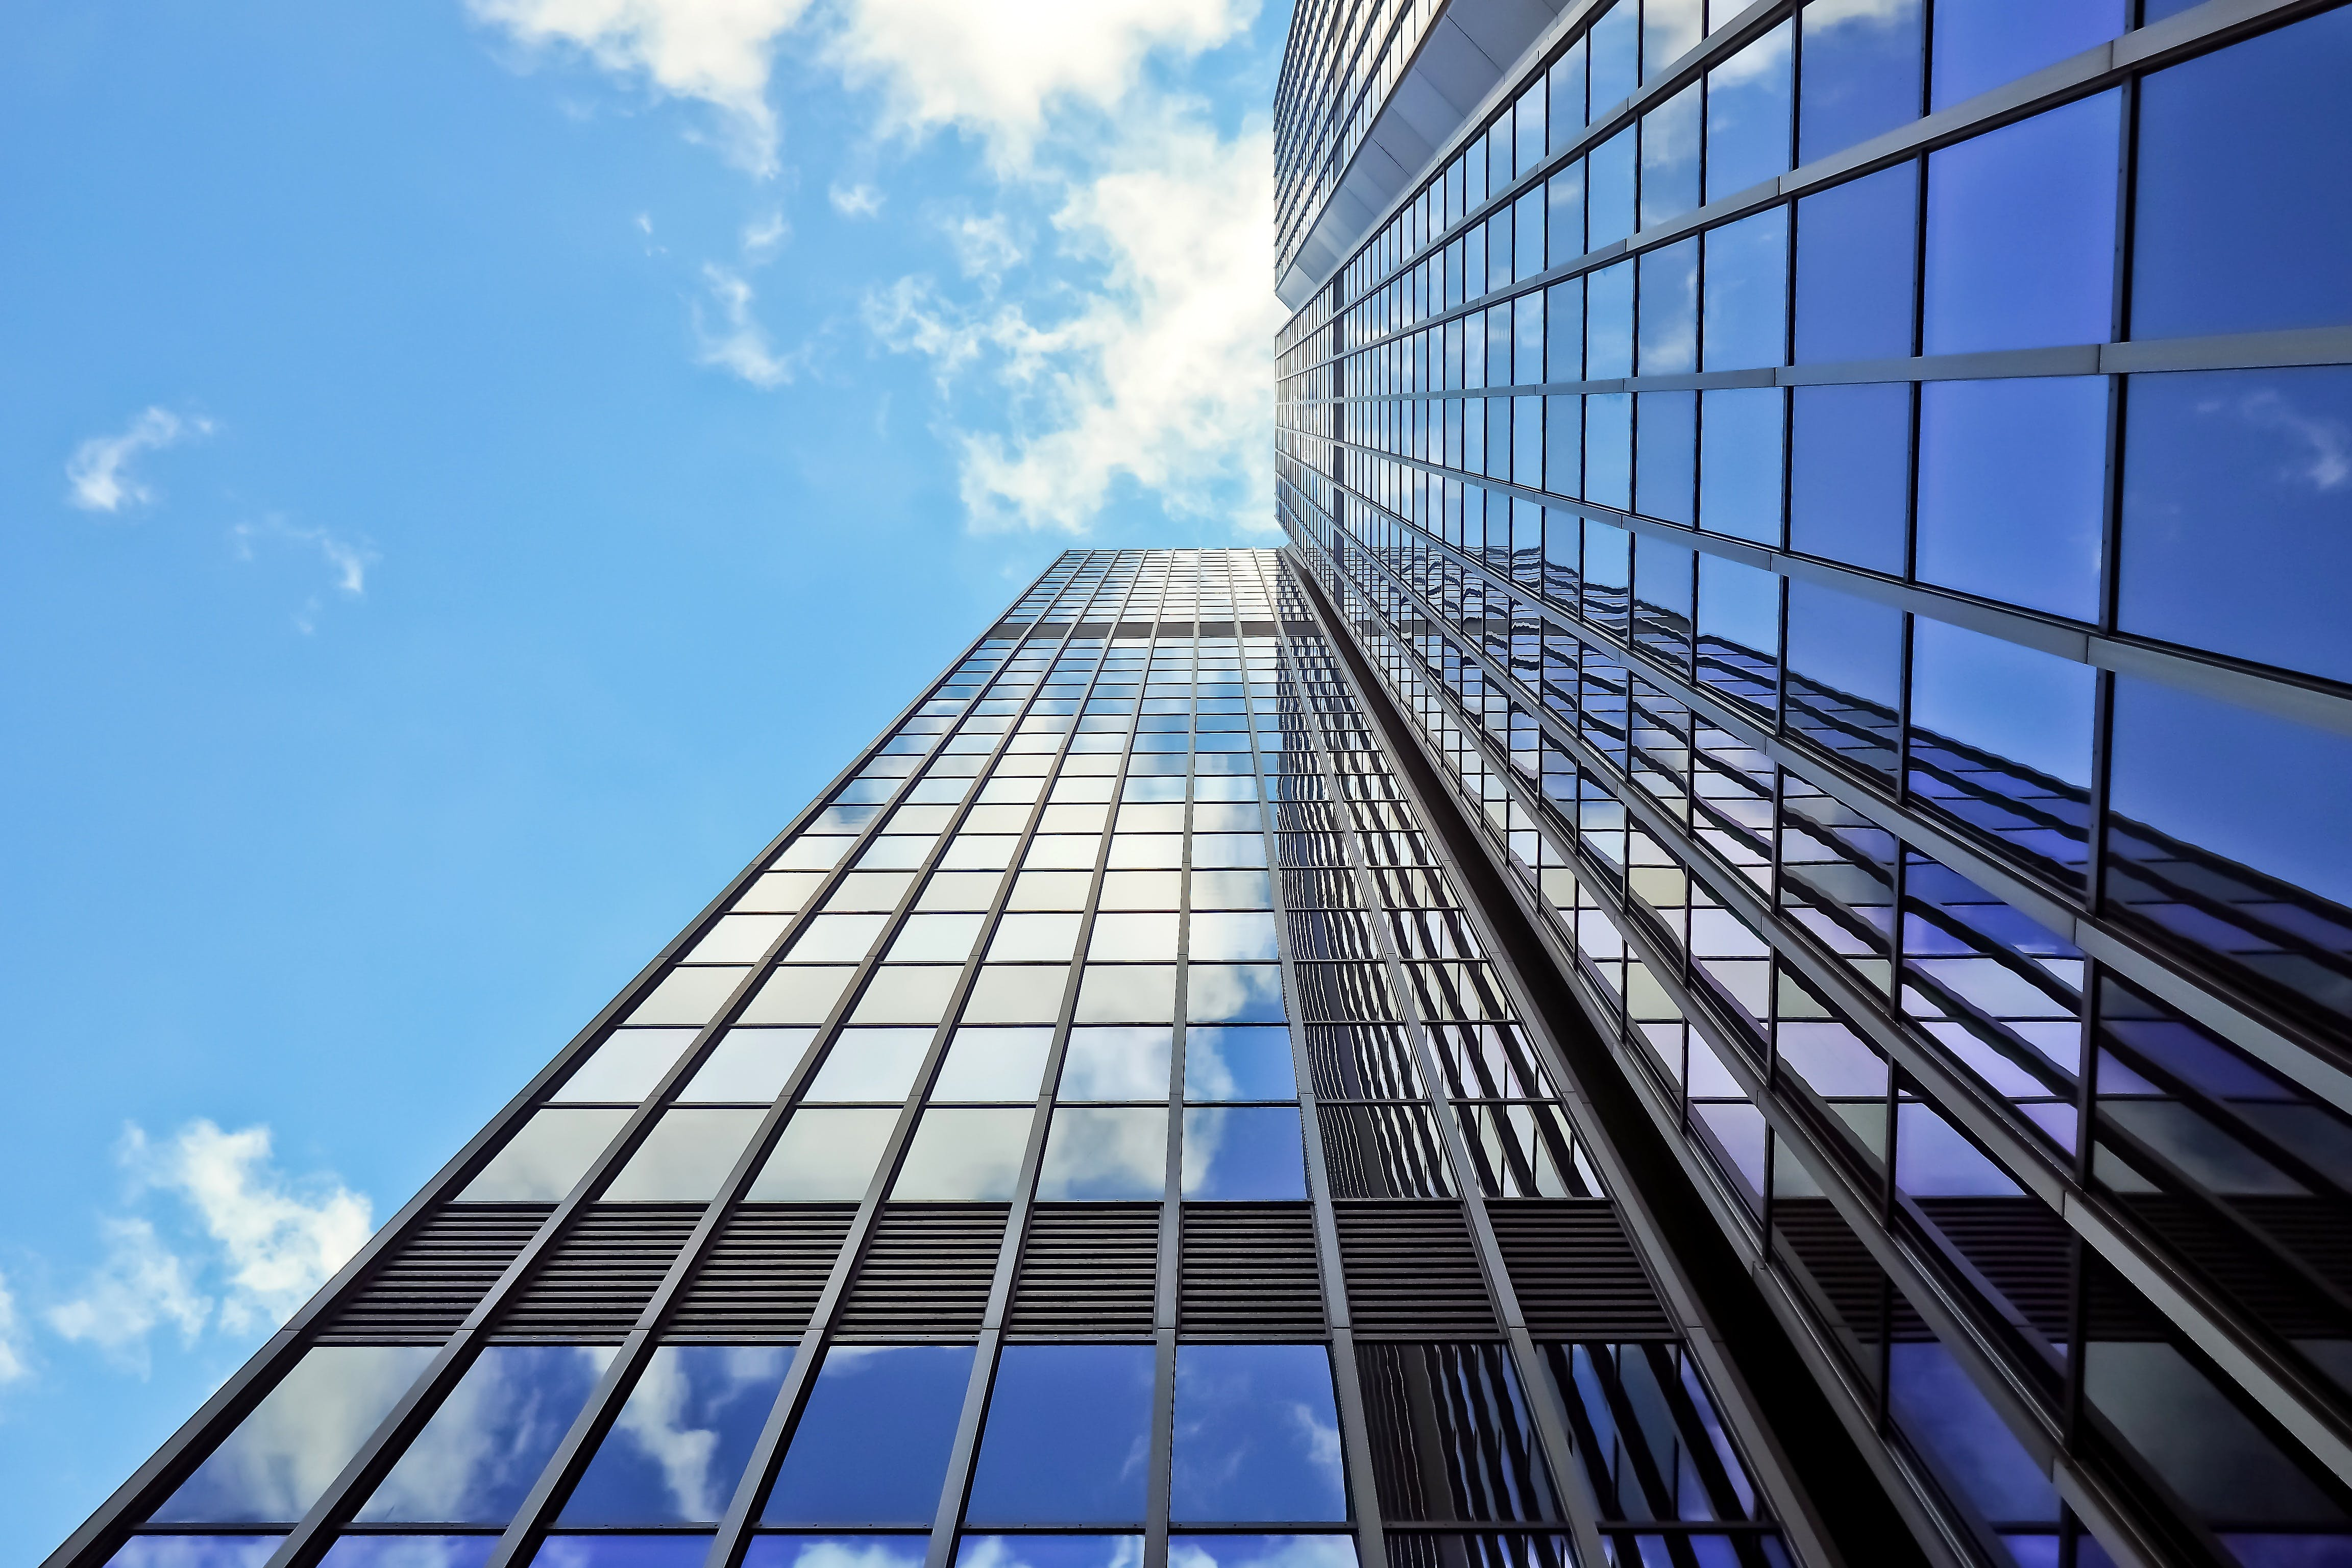 Gray Glass Window High-rise Building With Sky Reflection